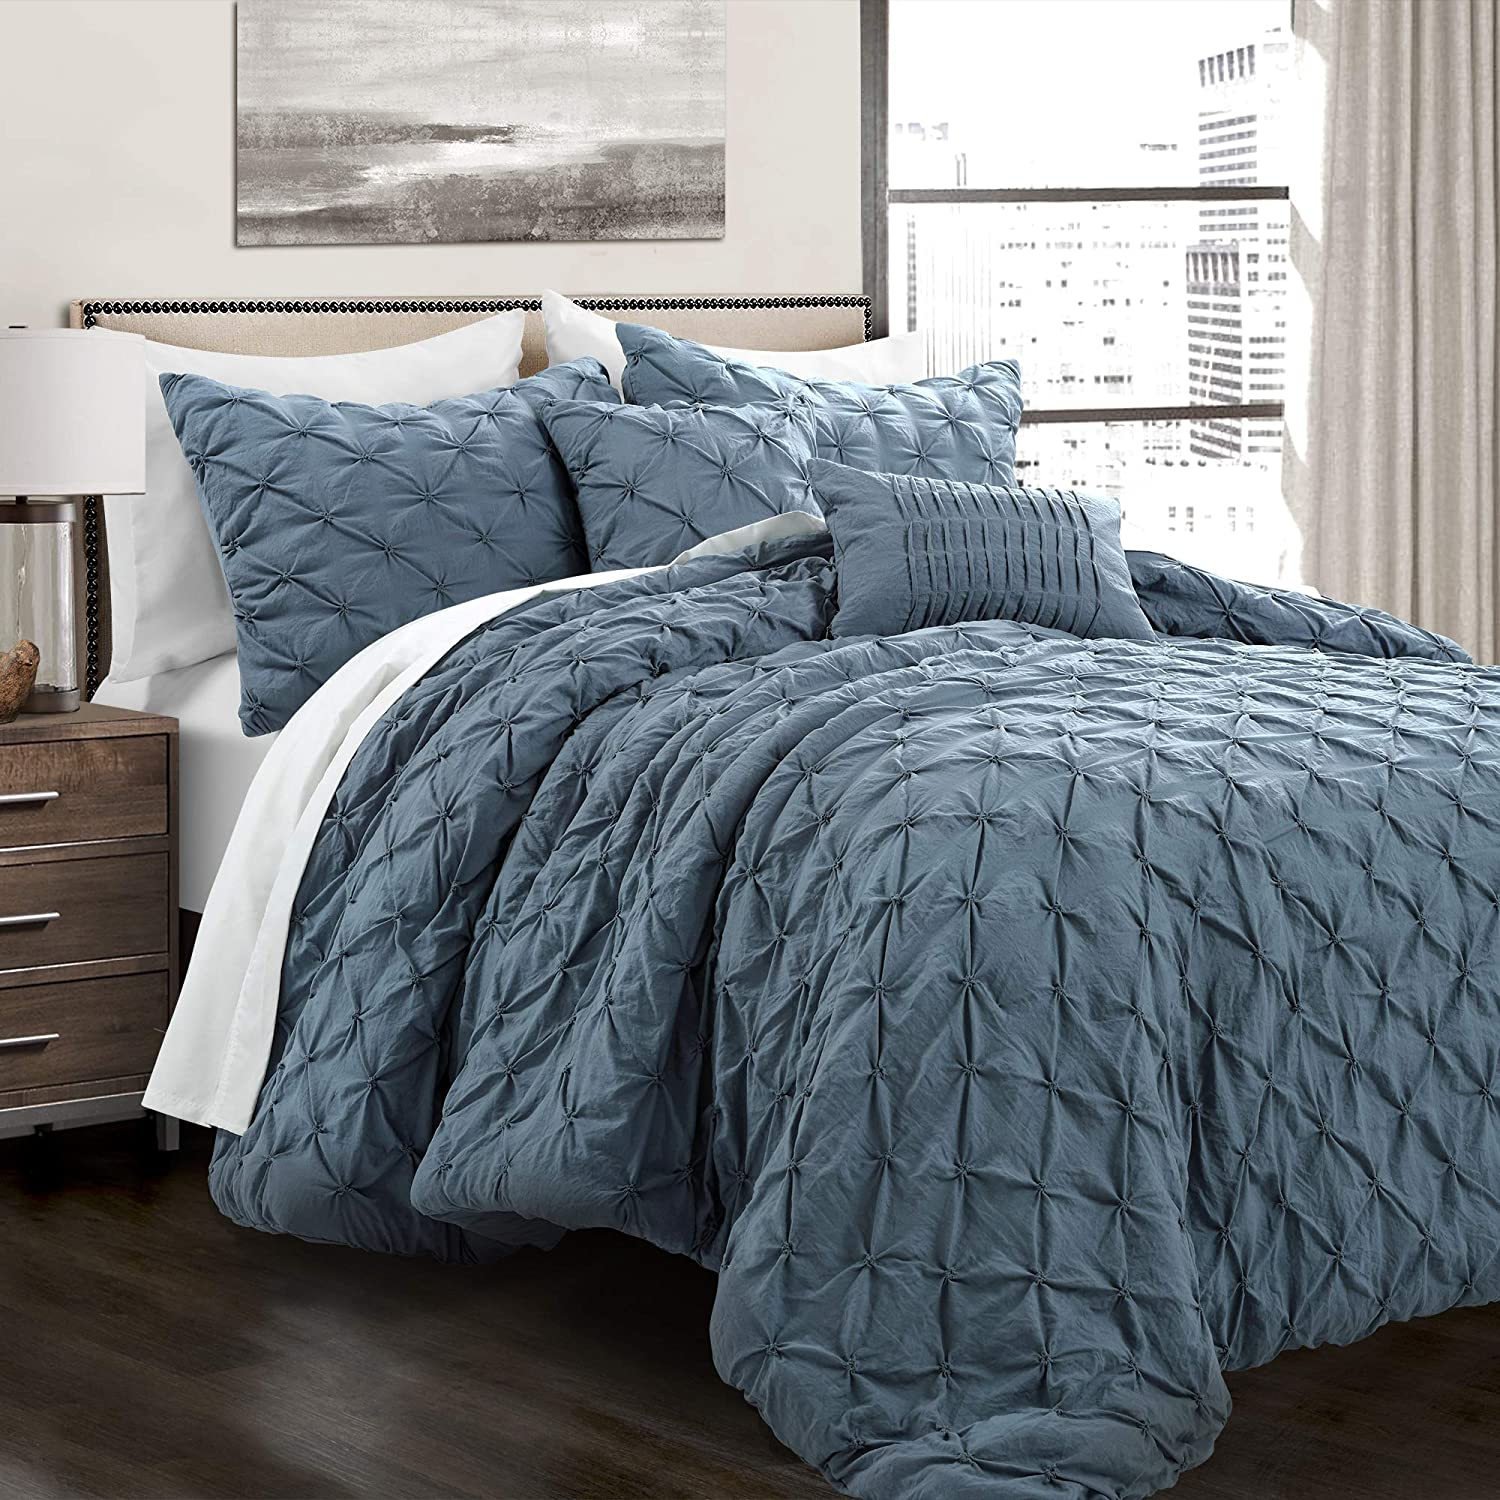 Lush Decor Stormy Blue Ravello Shabby Chic Style Pintuck 5 Piece Comforter Set with Pillow Shams, King